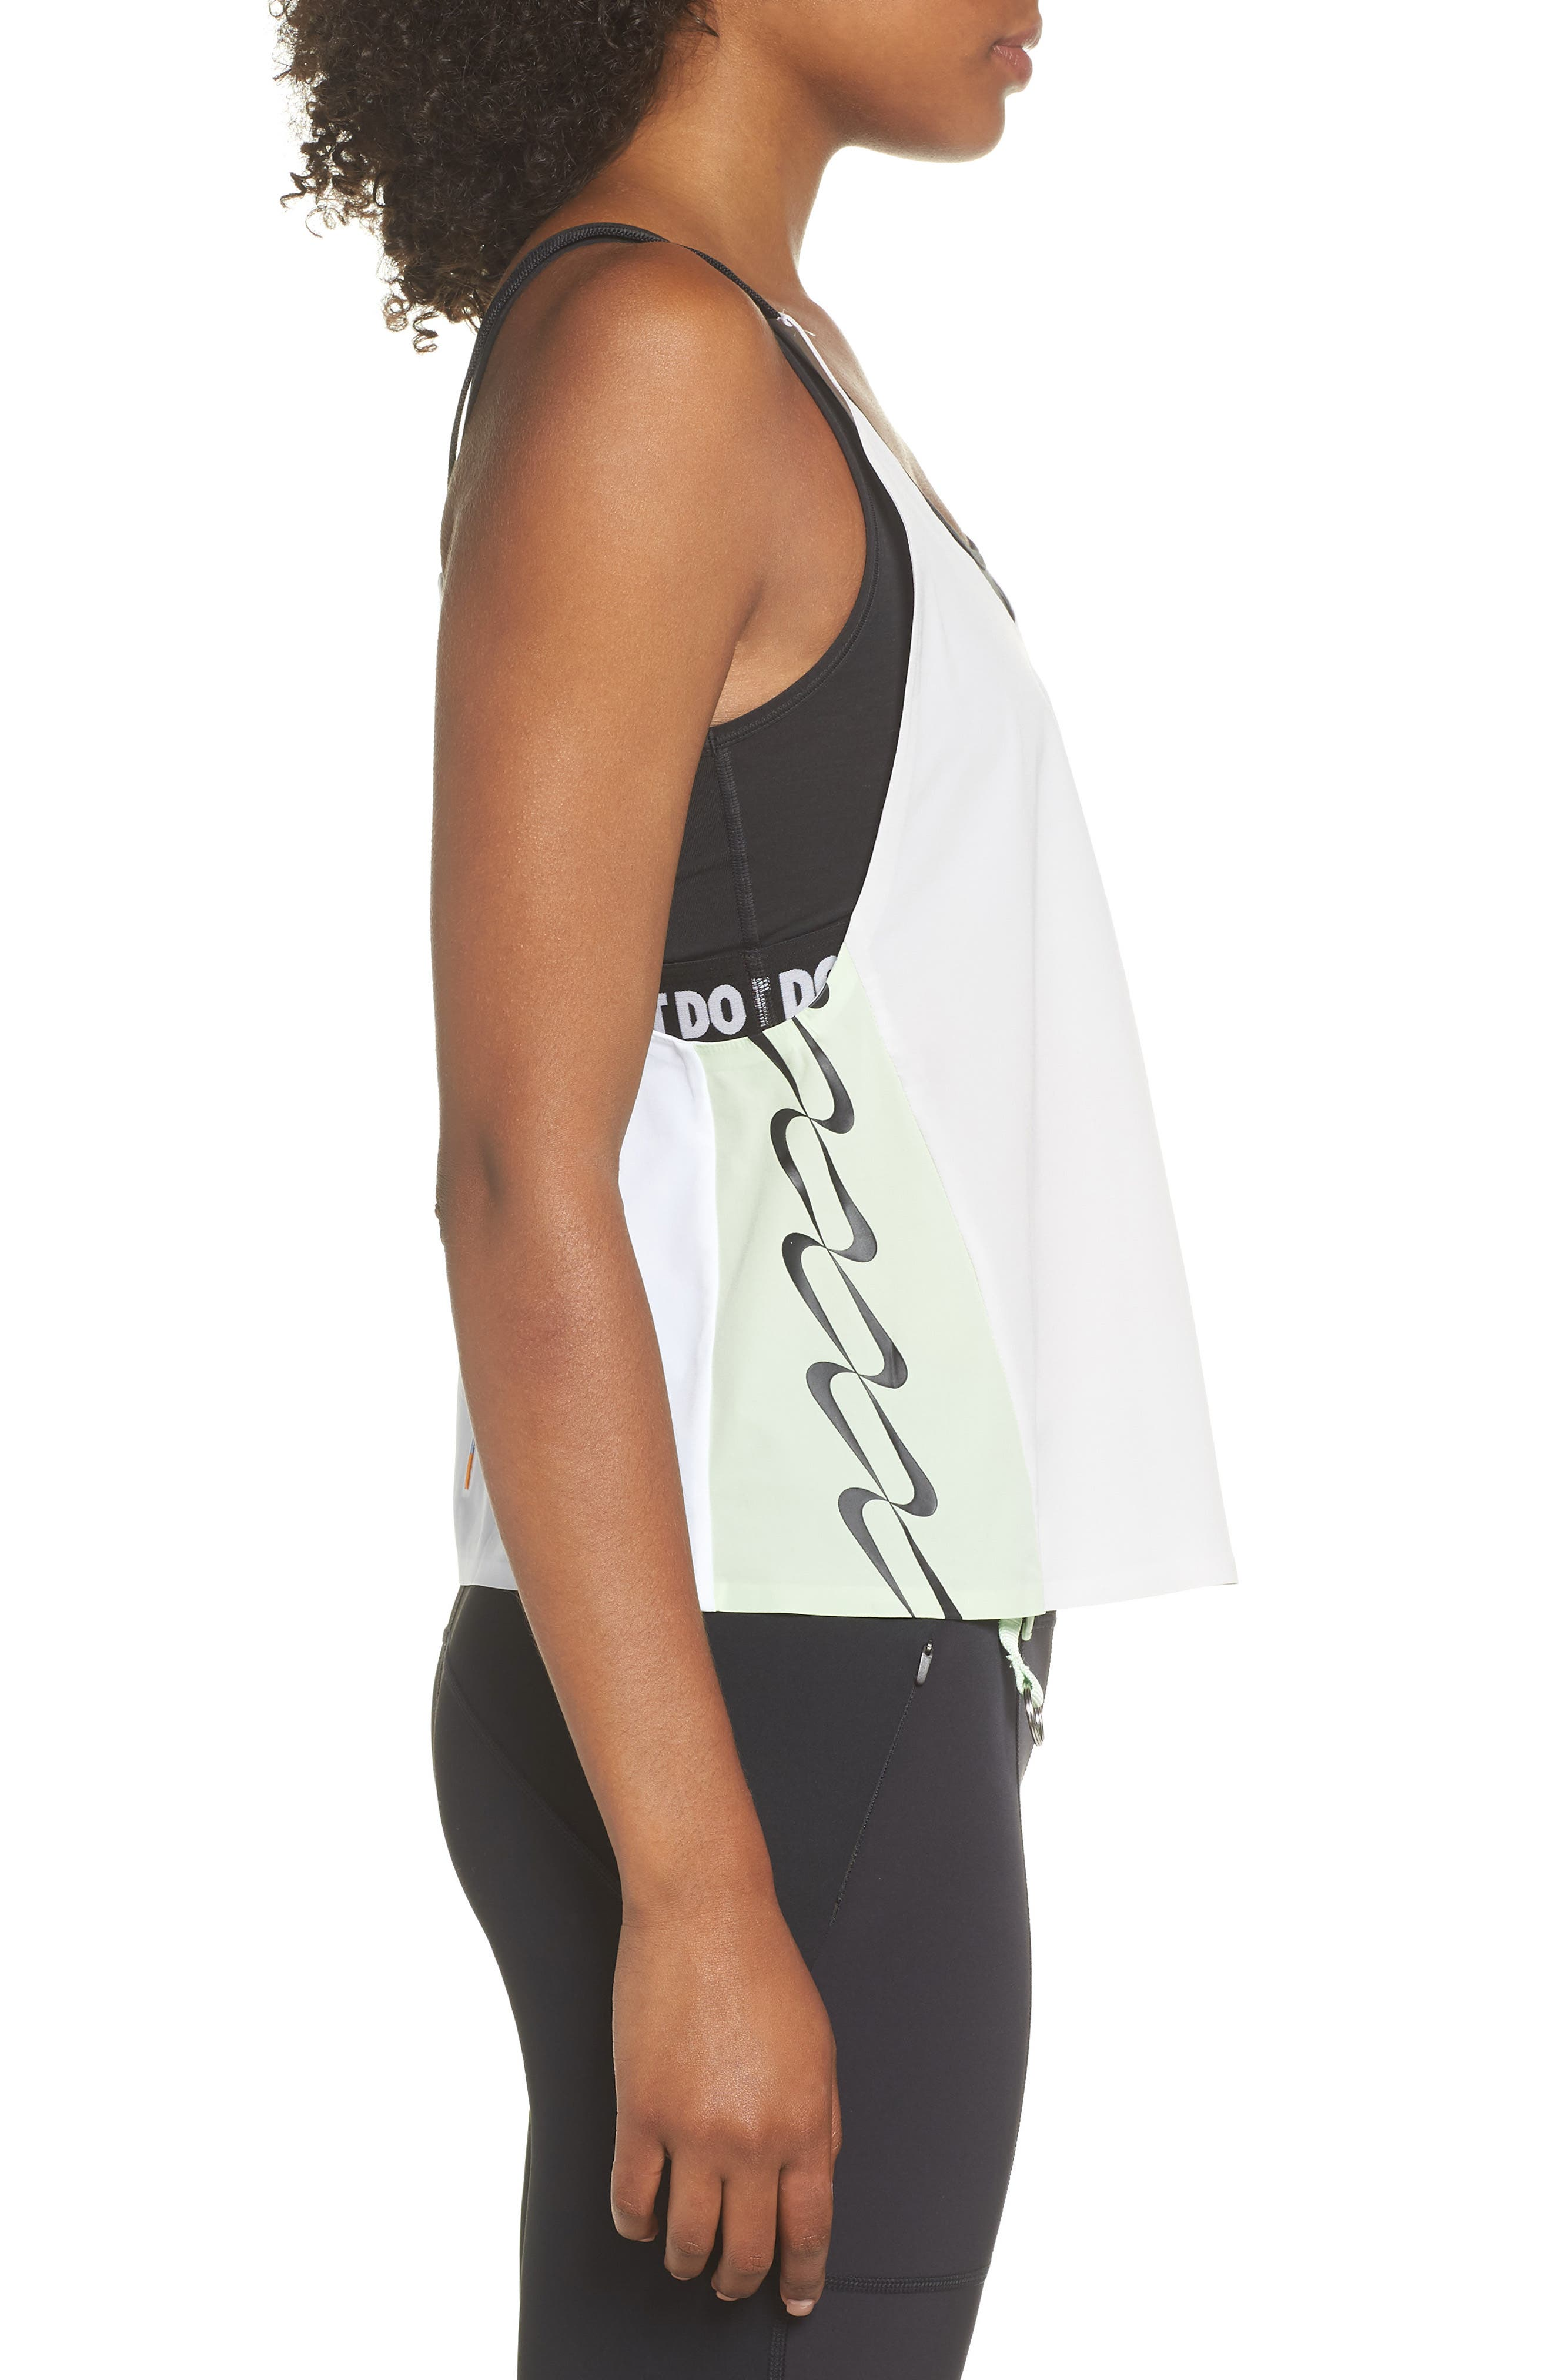 NRG Women's Colorblock Tank,                             Alternate thumbnail 3, color,                             Vast Grey/ White/ Vapor Green